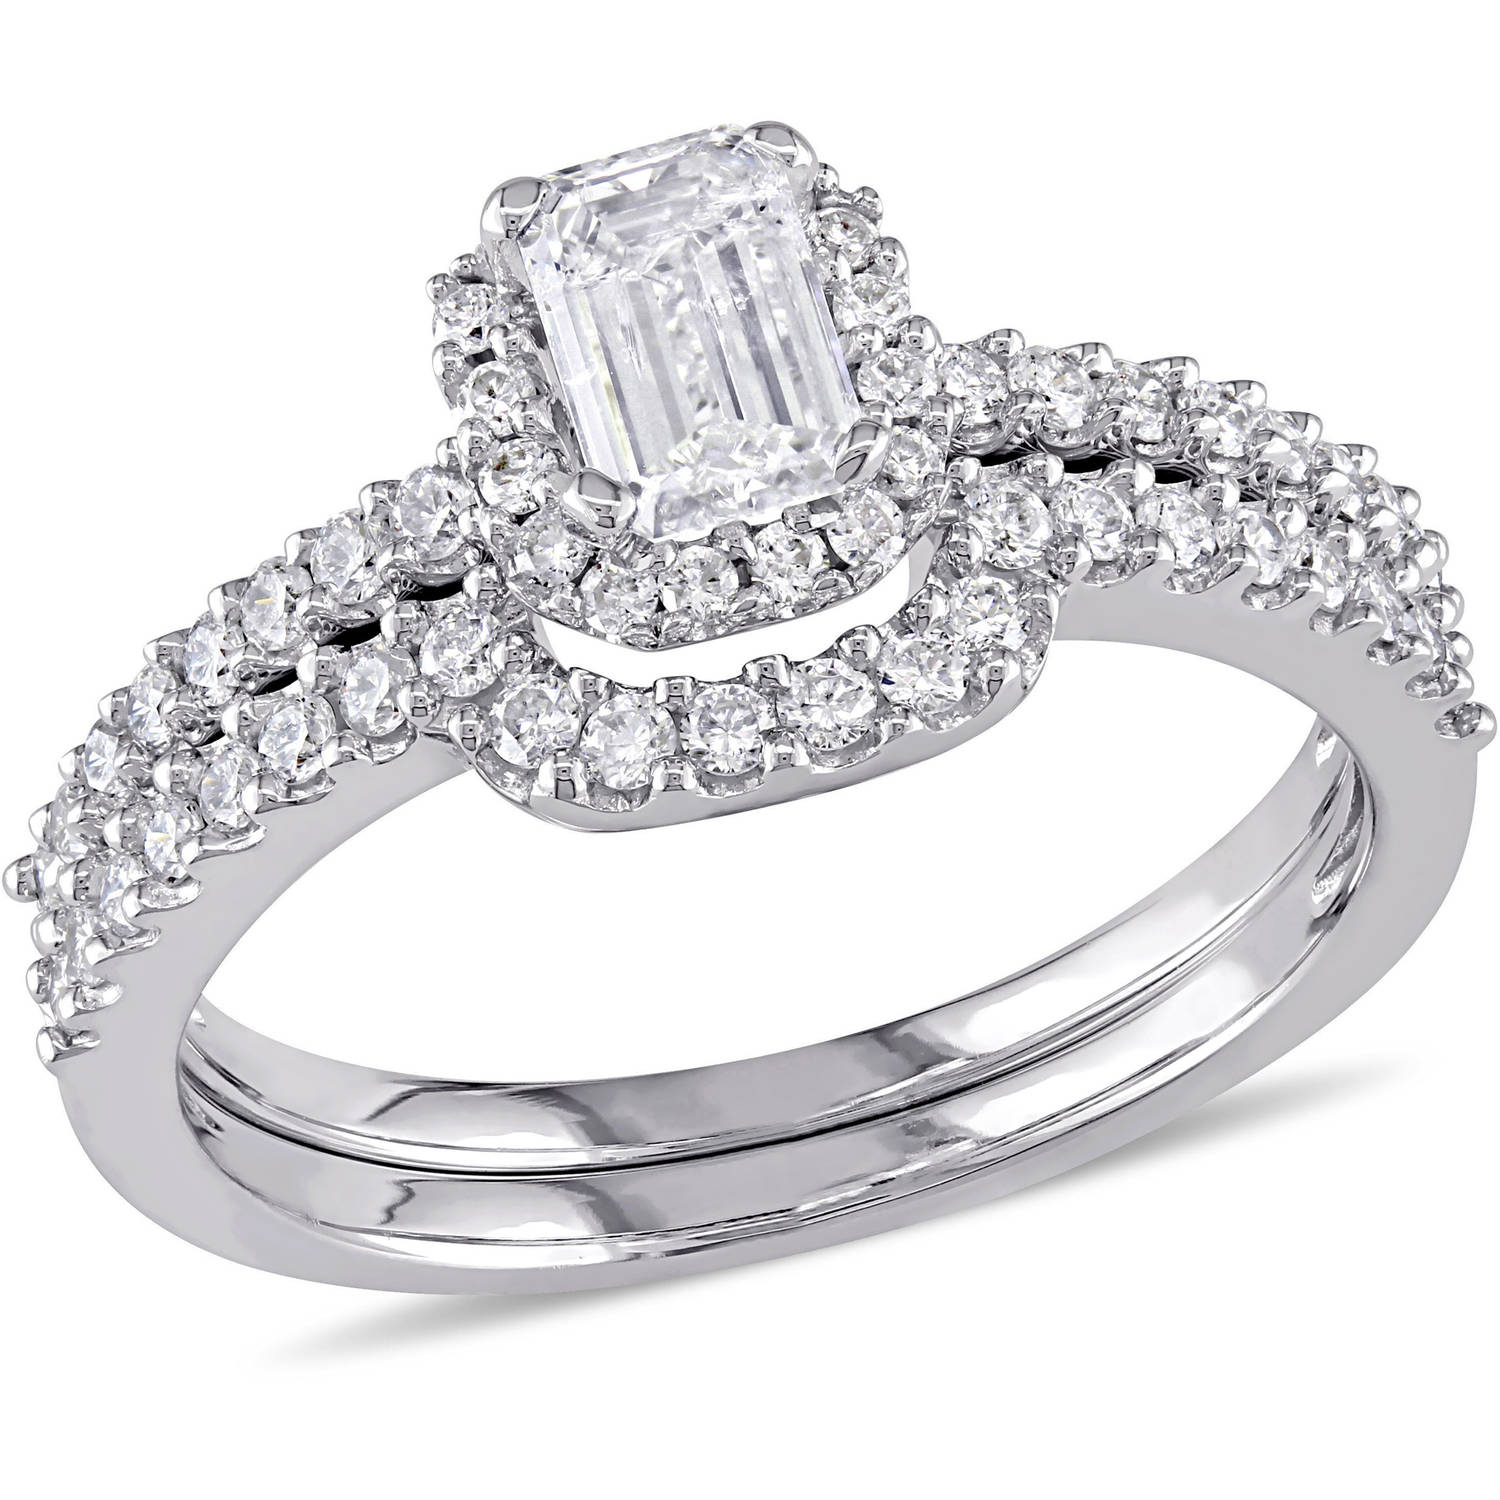 Miabella 1 Carat T.W. Diamond 14kt White Gold Halo Bridal Set